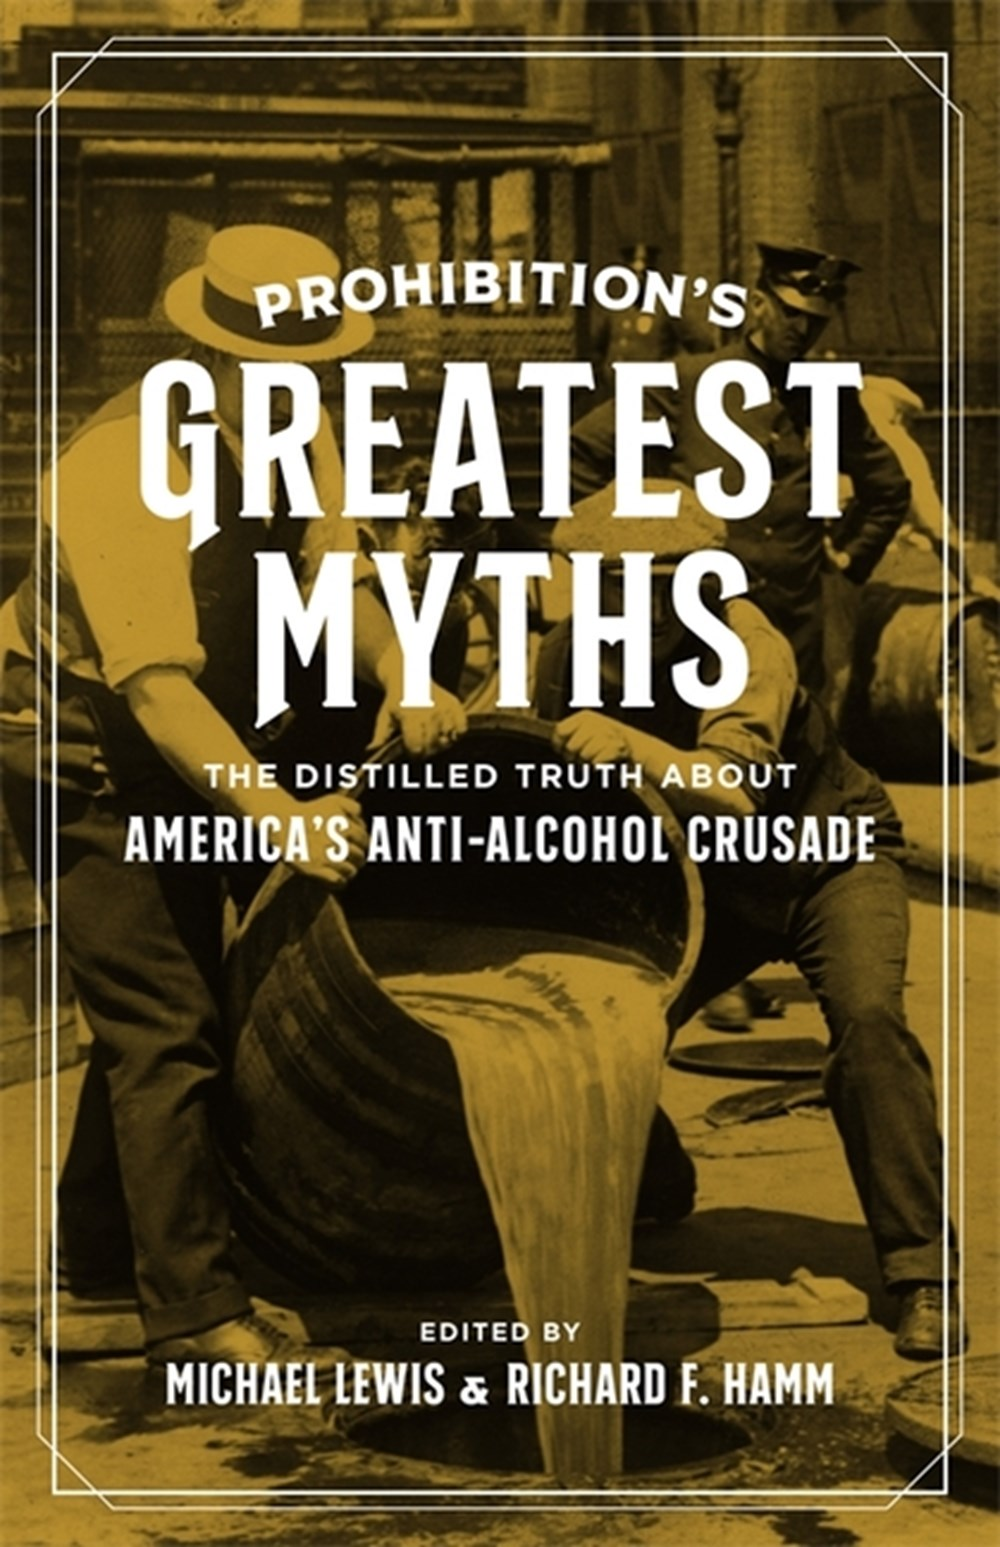 Prohibition's Greatest Myths The Distilled Truth about America's Anti-Alcohol Crusade